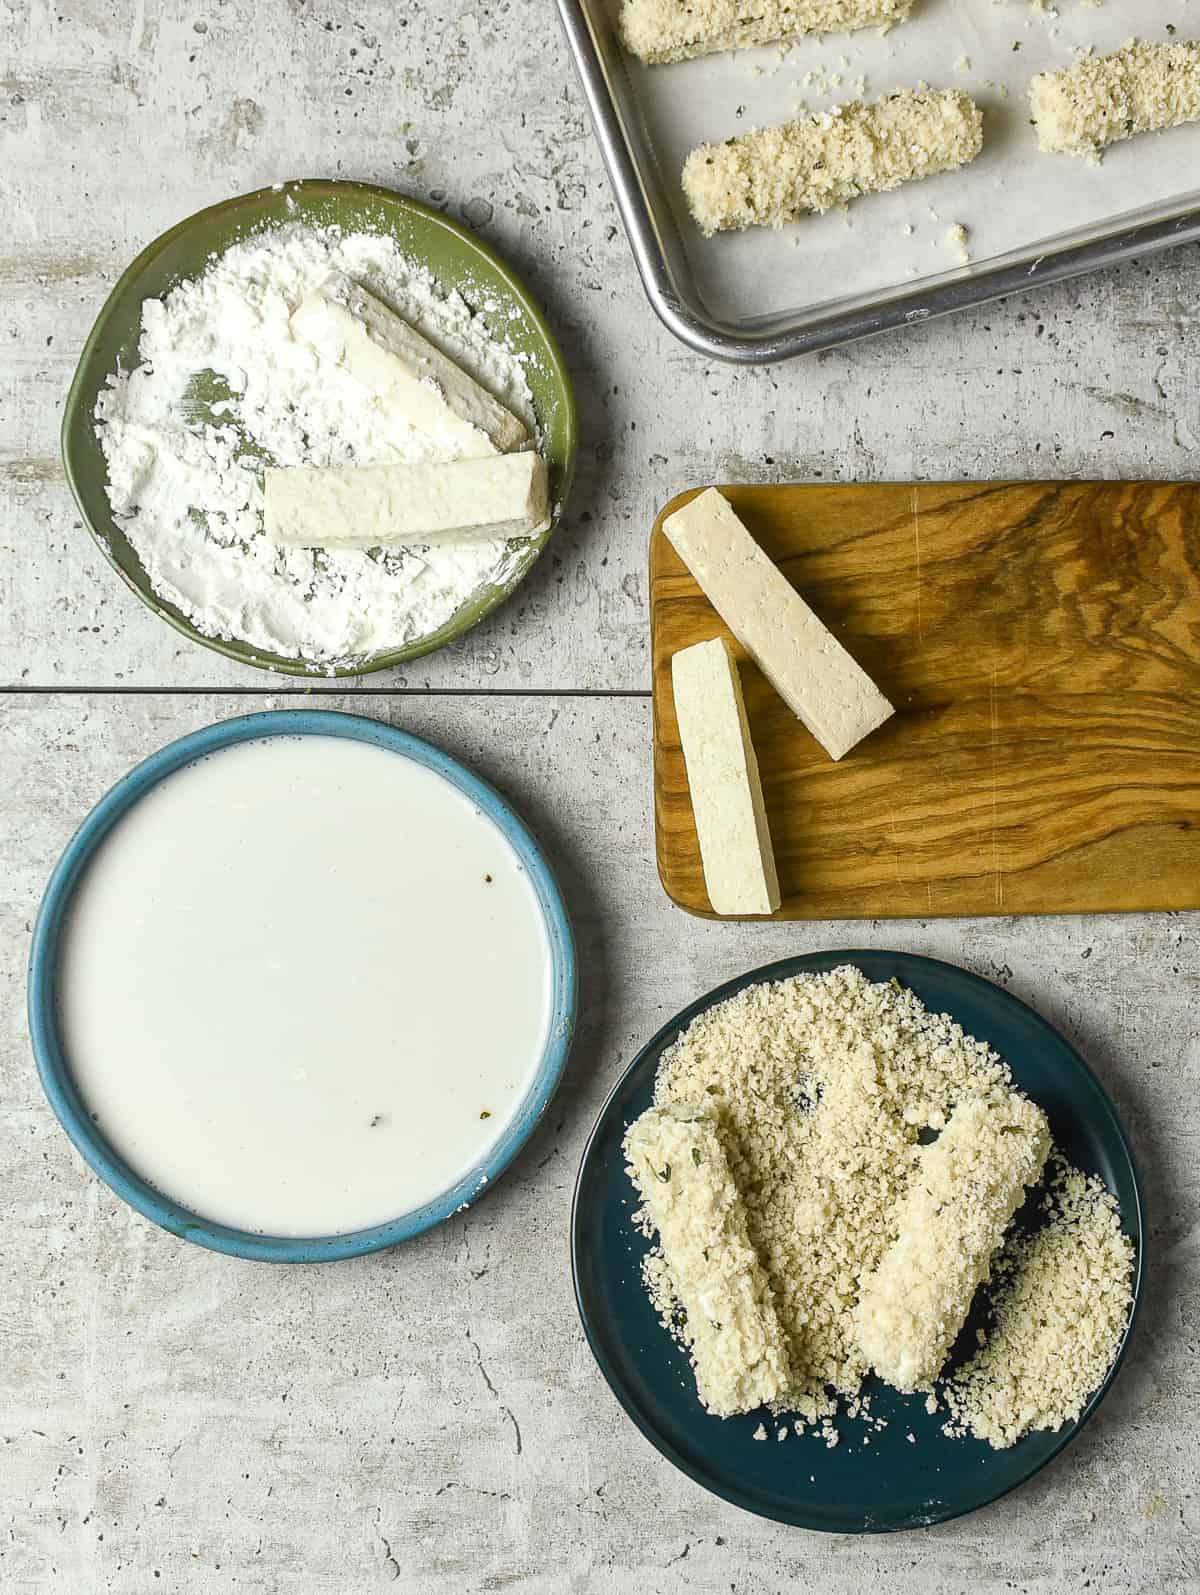 flour, milk, and bread crumbs in bowls with tofu on cutting board.